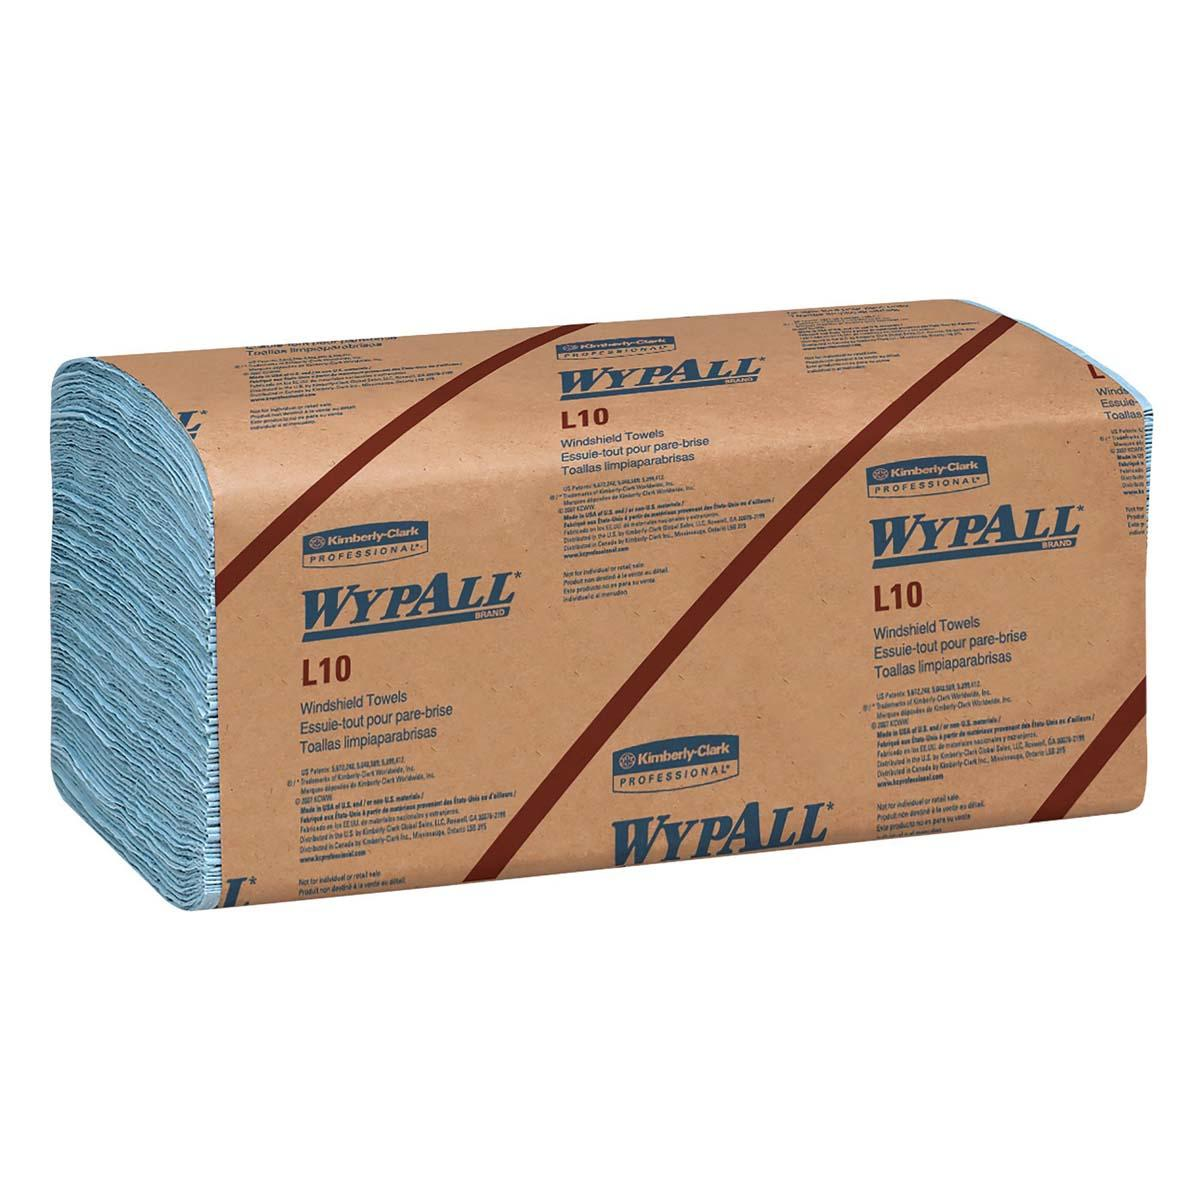 Wypall L10 Disposable Wipers (05123), Windshield Wipe, 1-PLY, Banded, Blue, 12 Packs / Case, 200 Wipes / Pack, 2,400 Sheets / Case